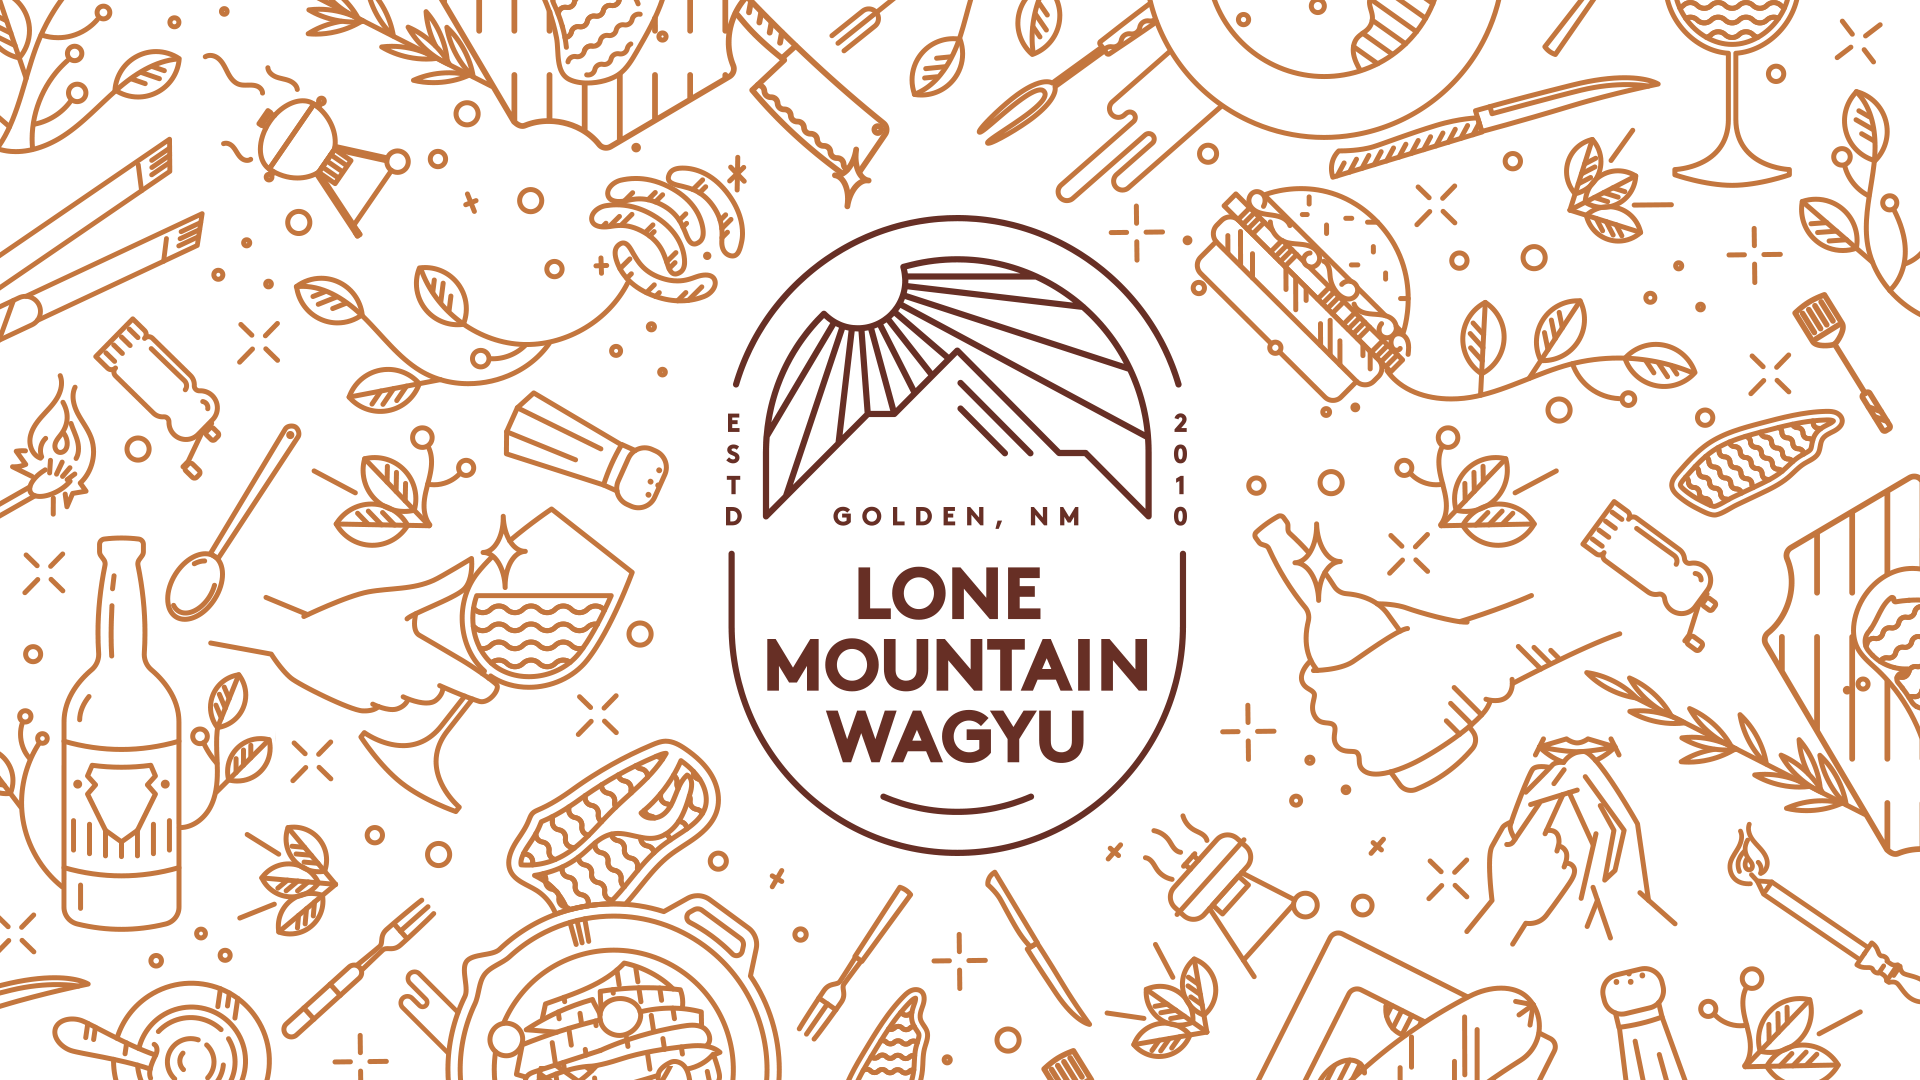 EAT LIFE TO THE FULLEST  Lone Mountain Wagyu